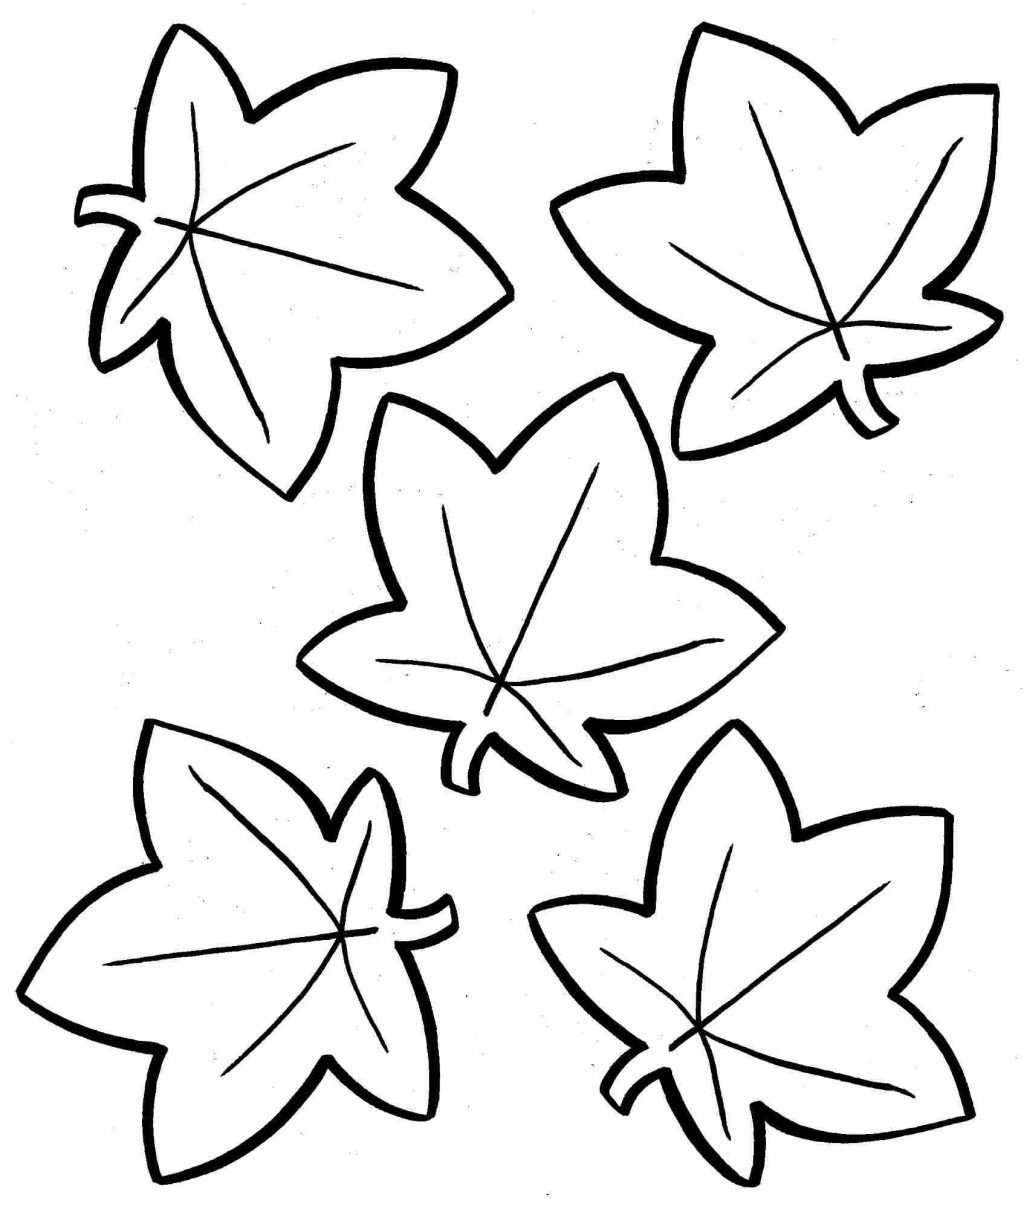 Coloring Pages ~ Free Printable Coloring Pages Autumnavesautumnaves - Free Printable Fall Leaves Coloring Pages